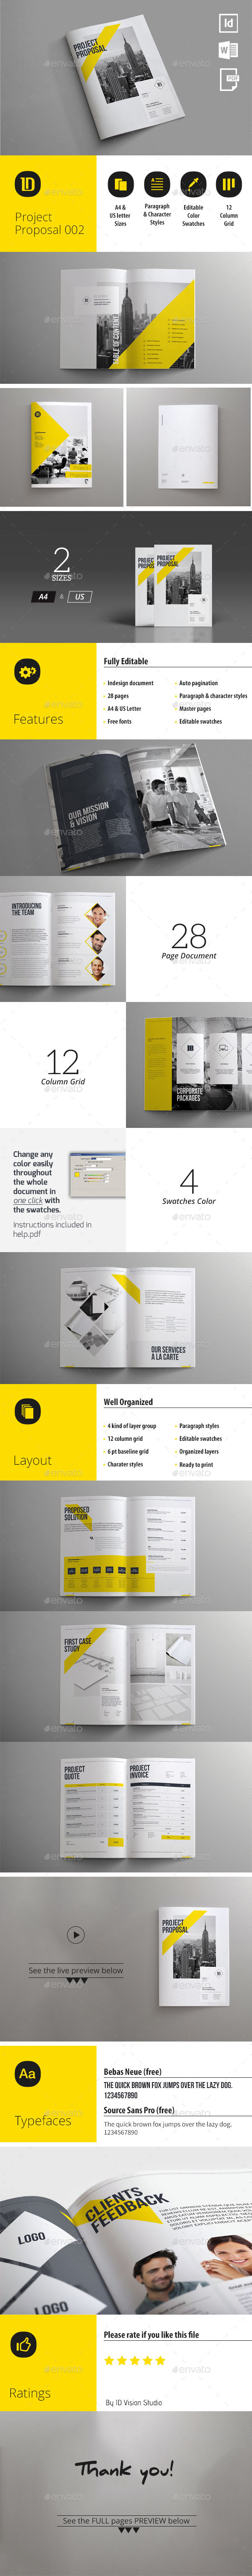 GraphicRiver Project Proposal Template 003 11476049